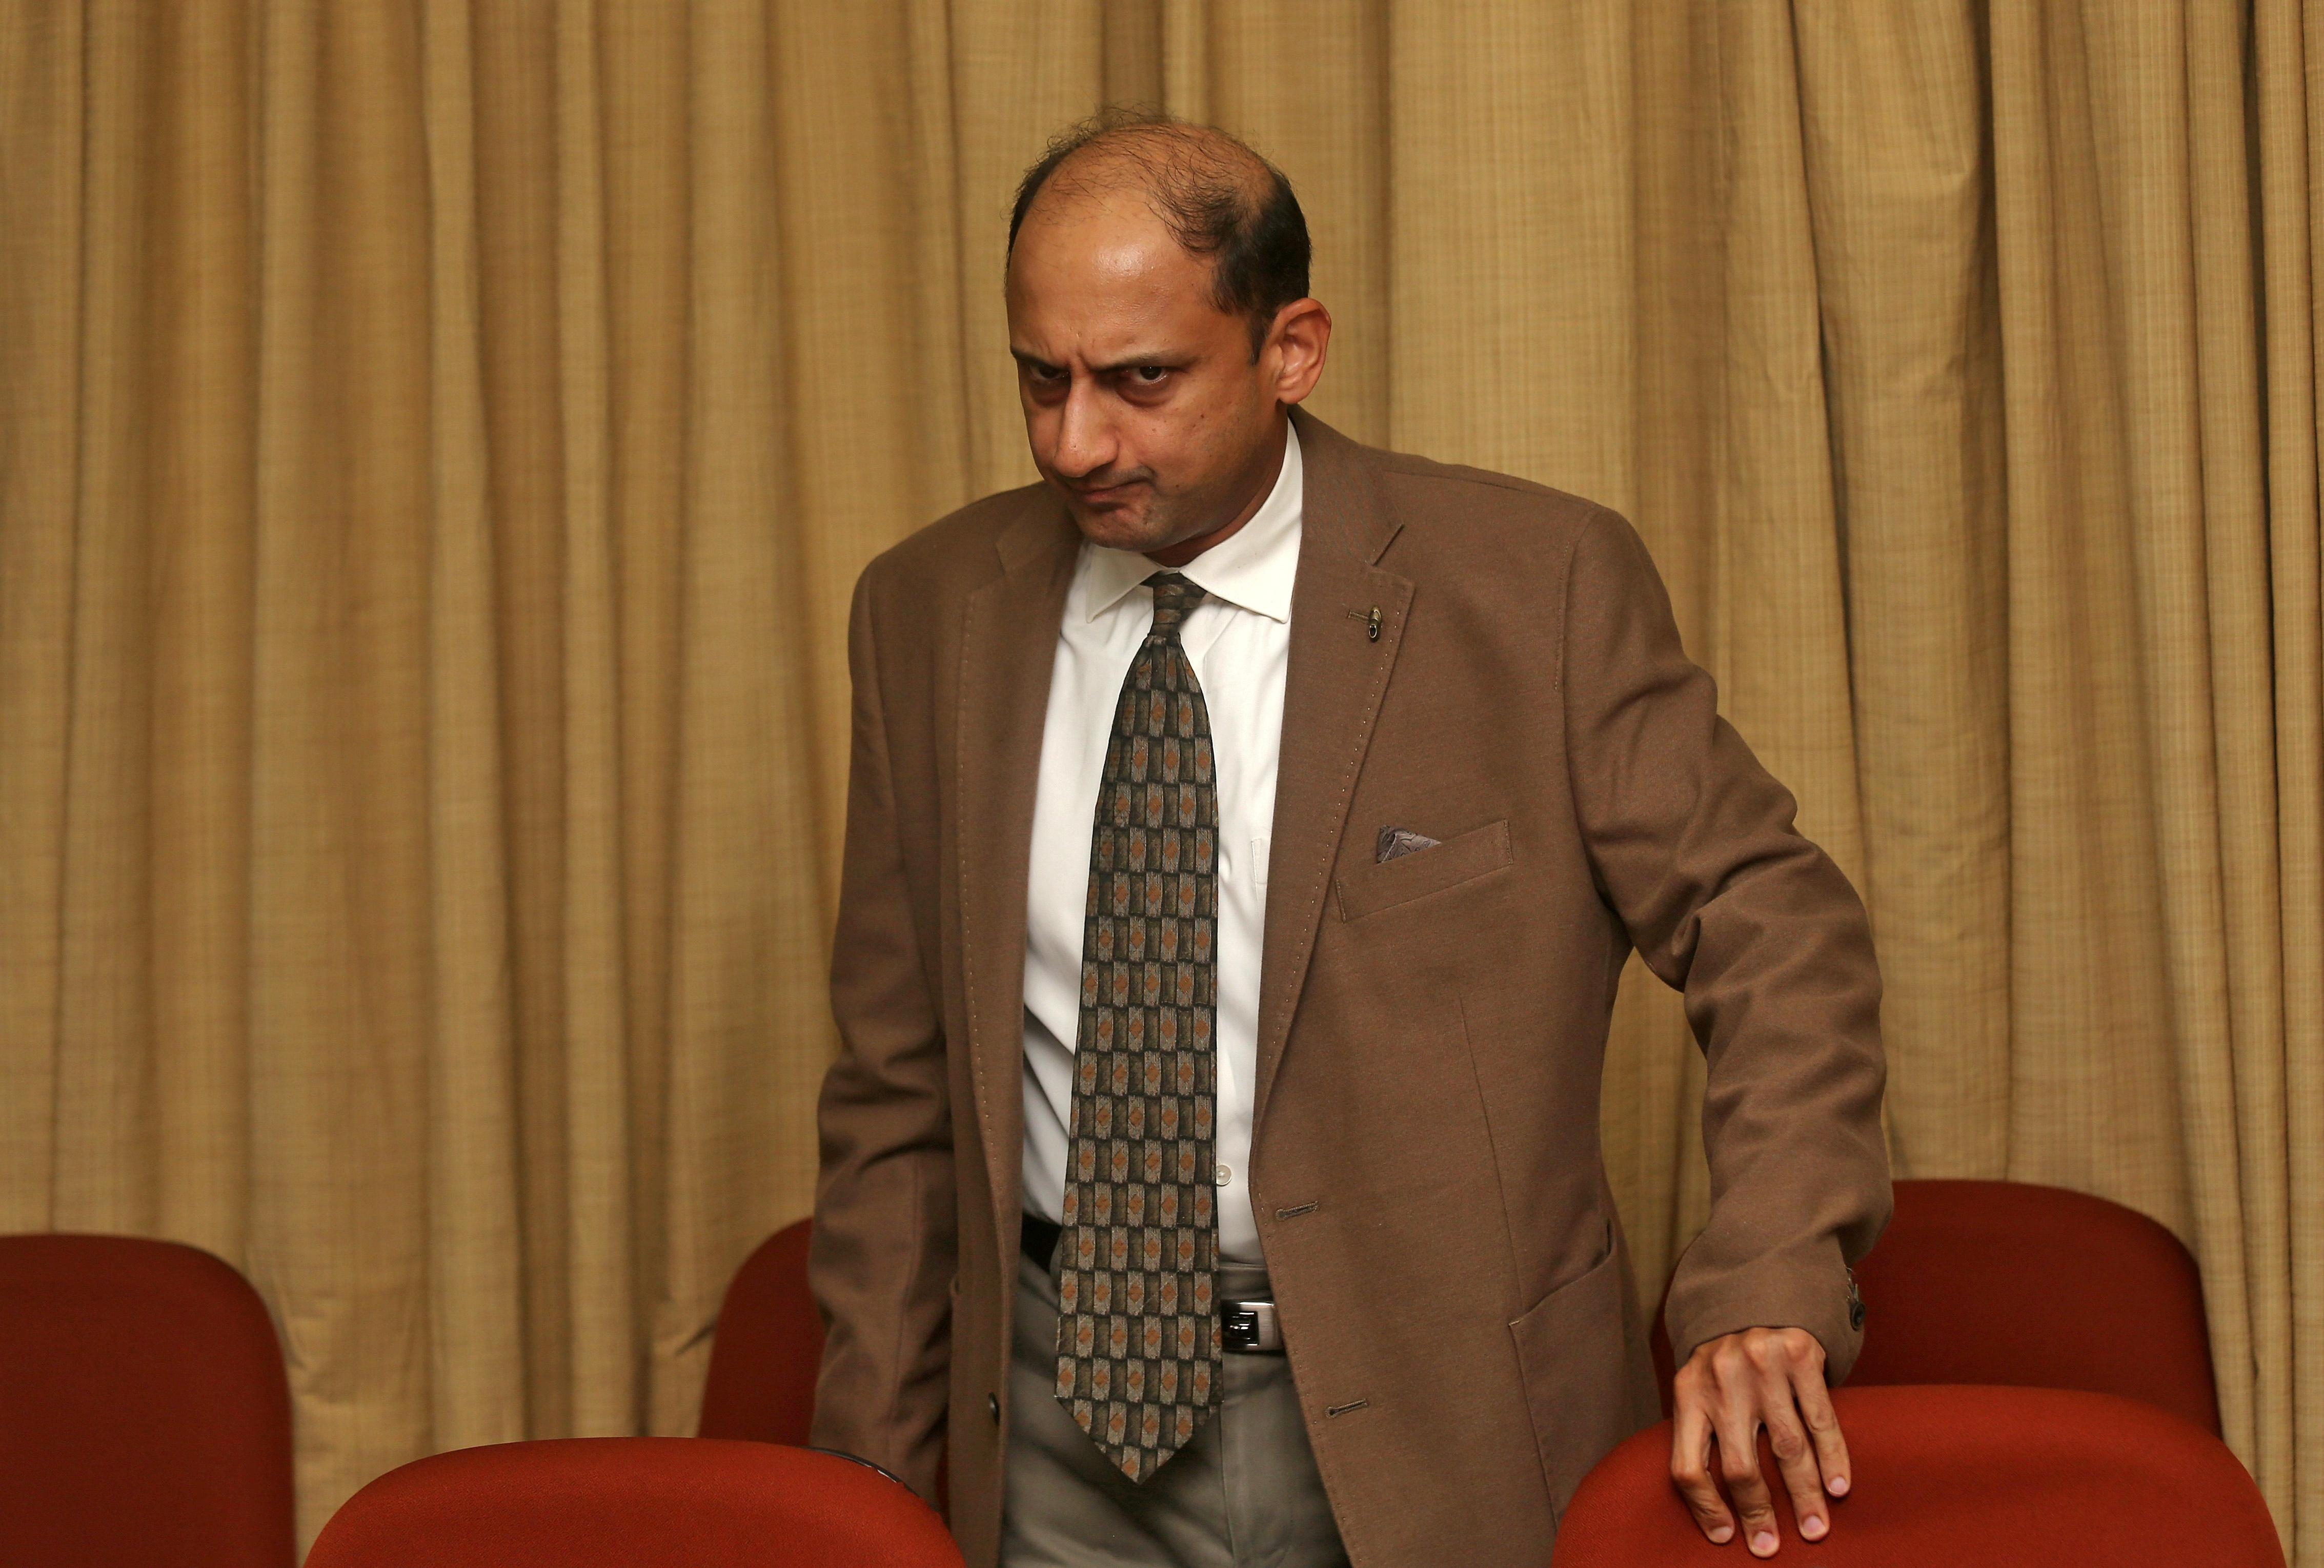 RBI Deputy Governor Viral Acharya quits, adding to independence concerns